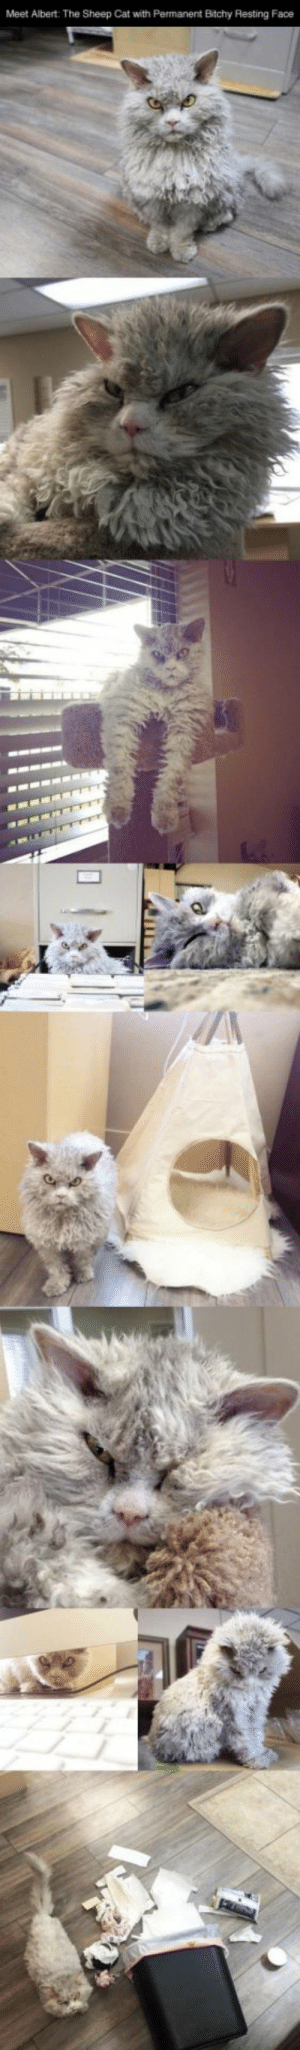 Albert the sheep cat. Resting bitchface defined.: Meet Albert: The Sheep Cat with Permanent Bitchy Resting Face Albert the sheep cat. Resting bitchface defined.